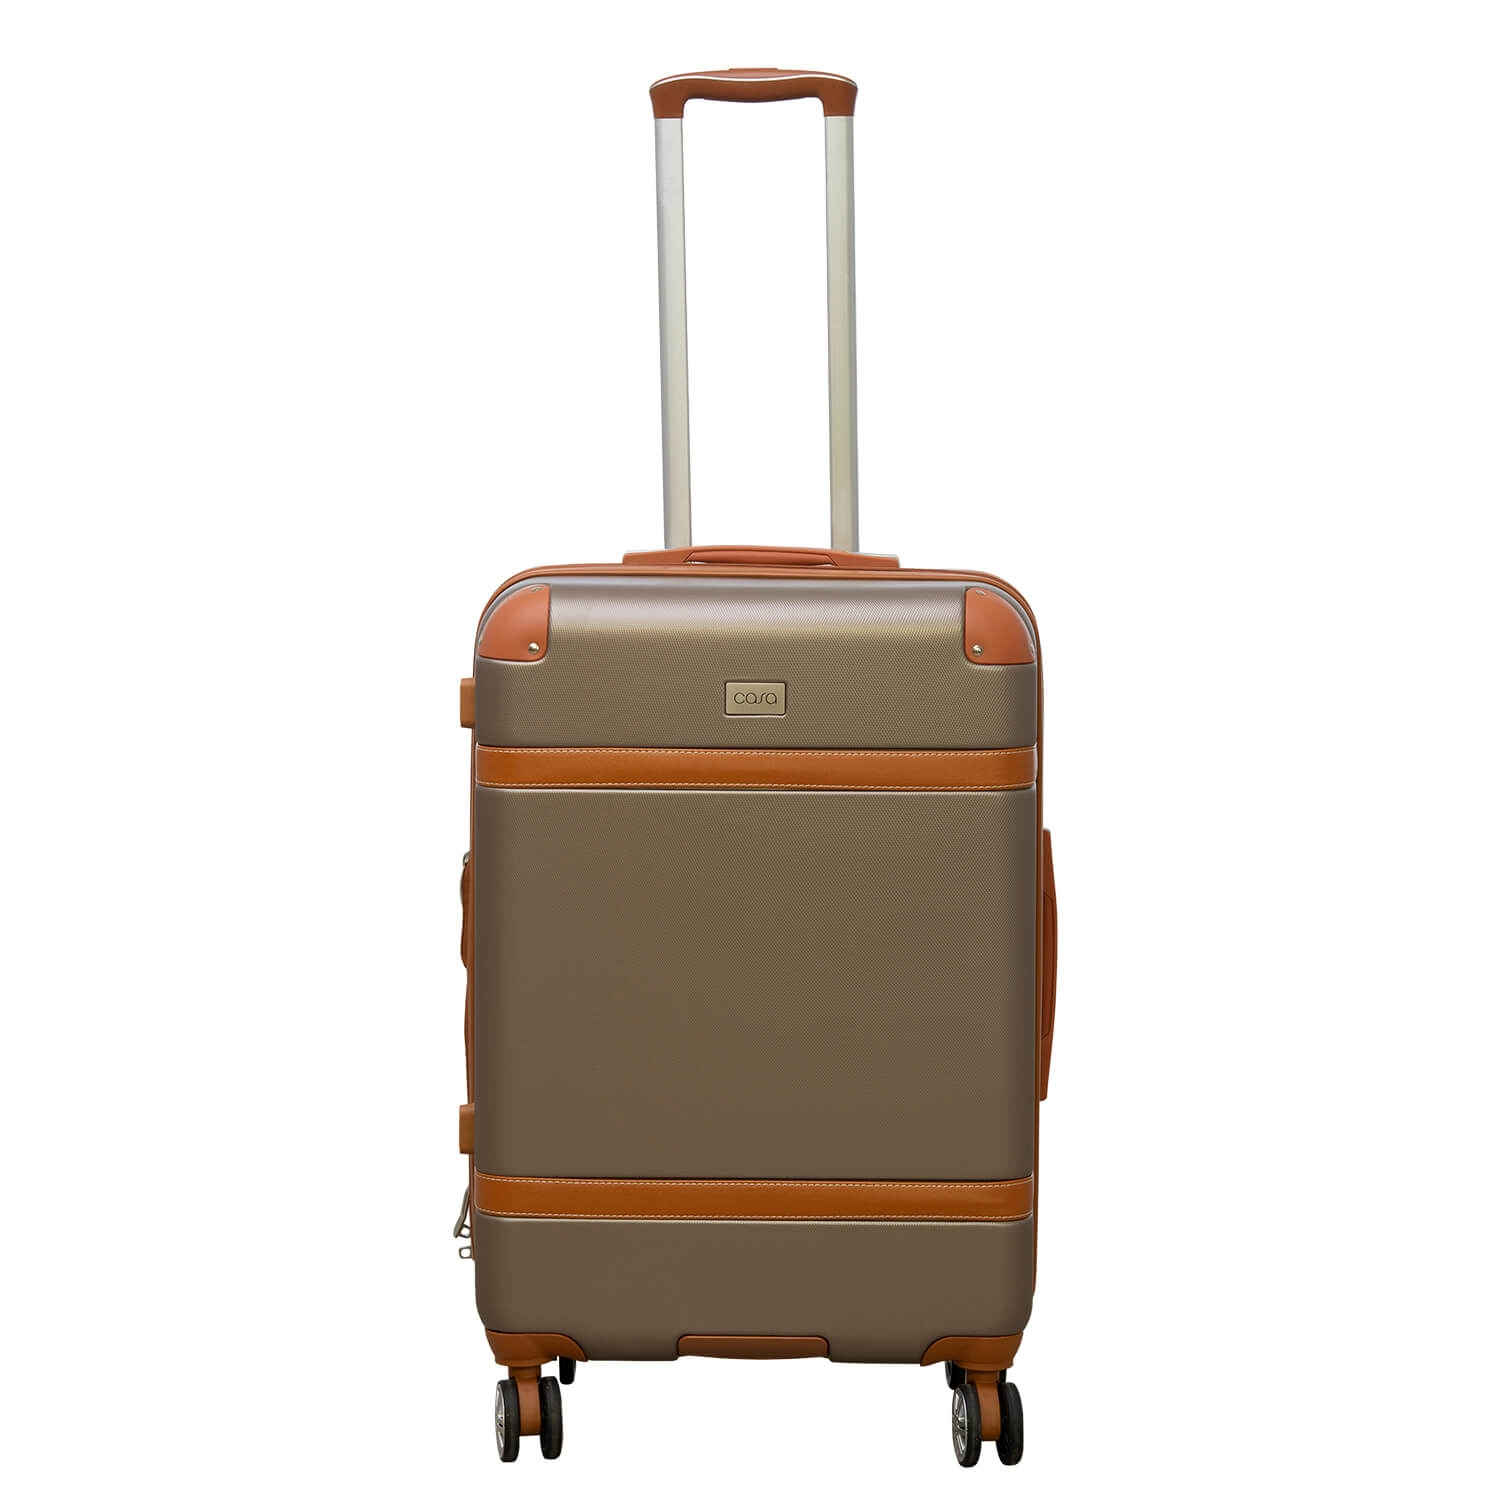 Image of Casa Contrast Banded Hard Case 40cm x 23cm x 65cm, Champagne And Tan